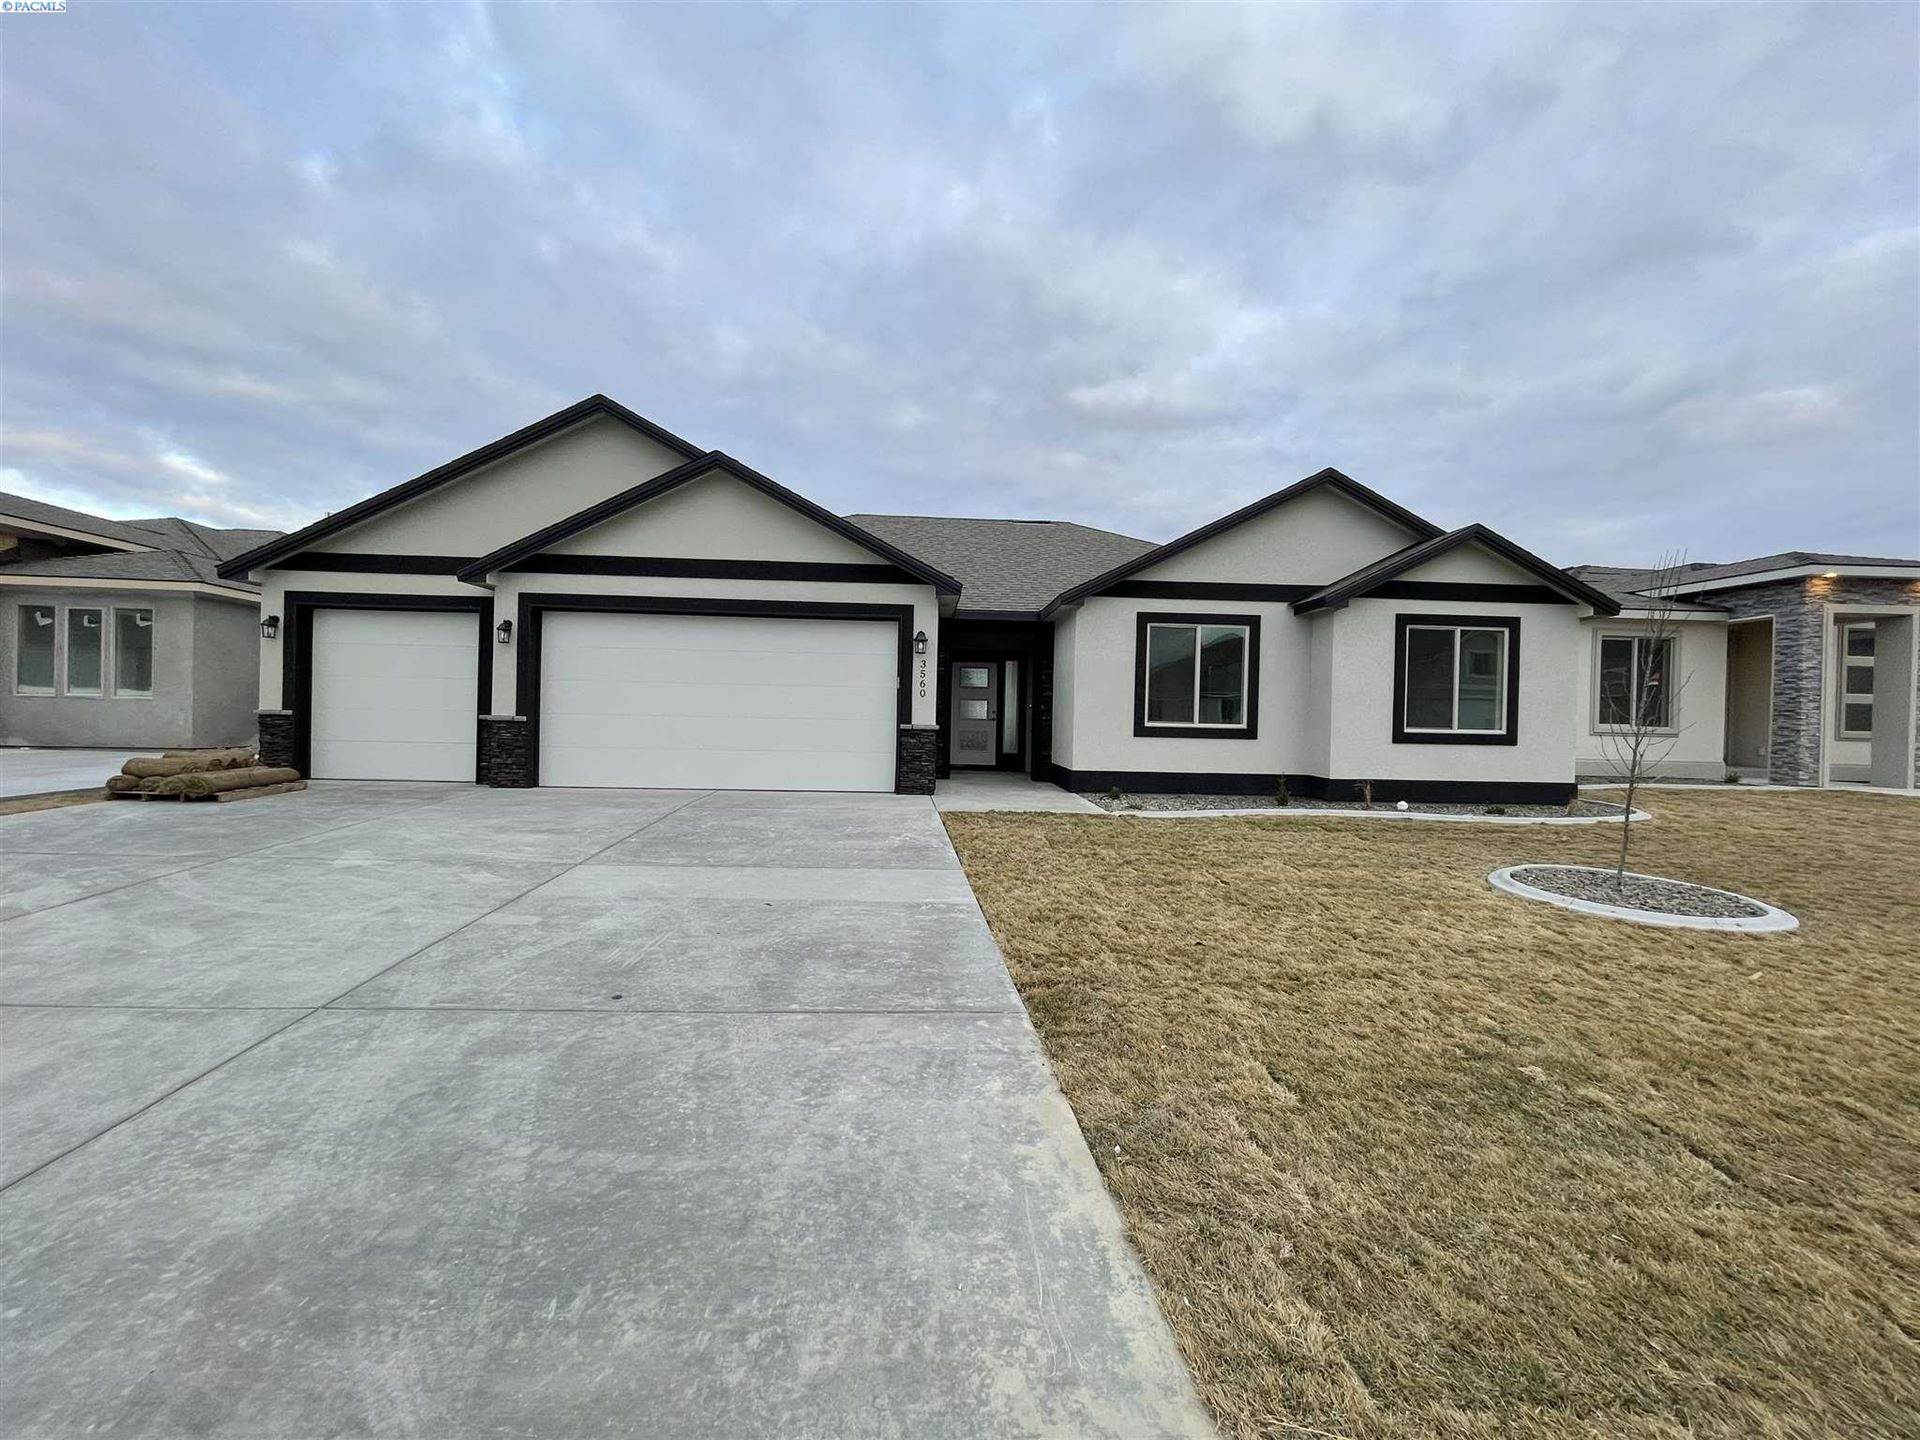 Photo of 3560 Curtis Dr, West Richland, WA 99353 (MLS # 250246)